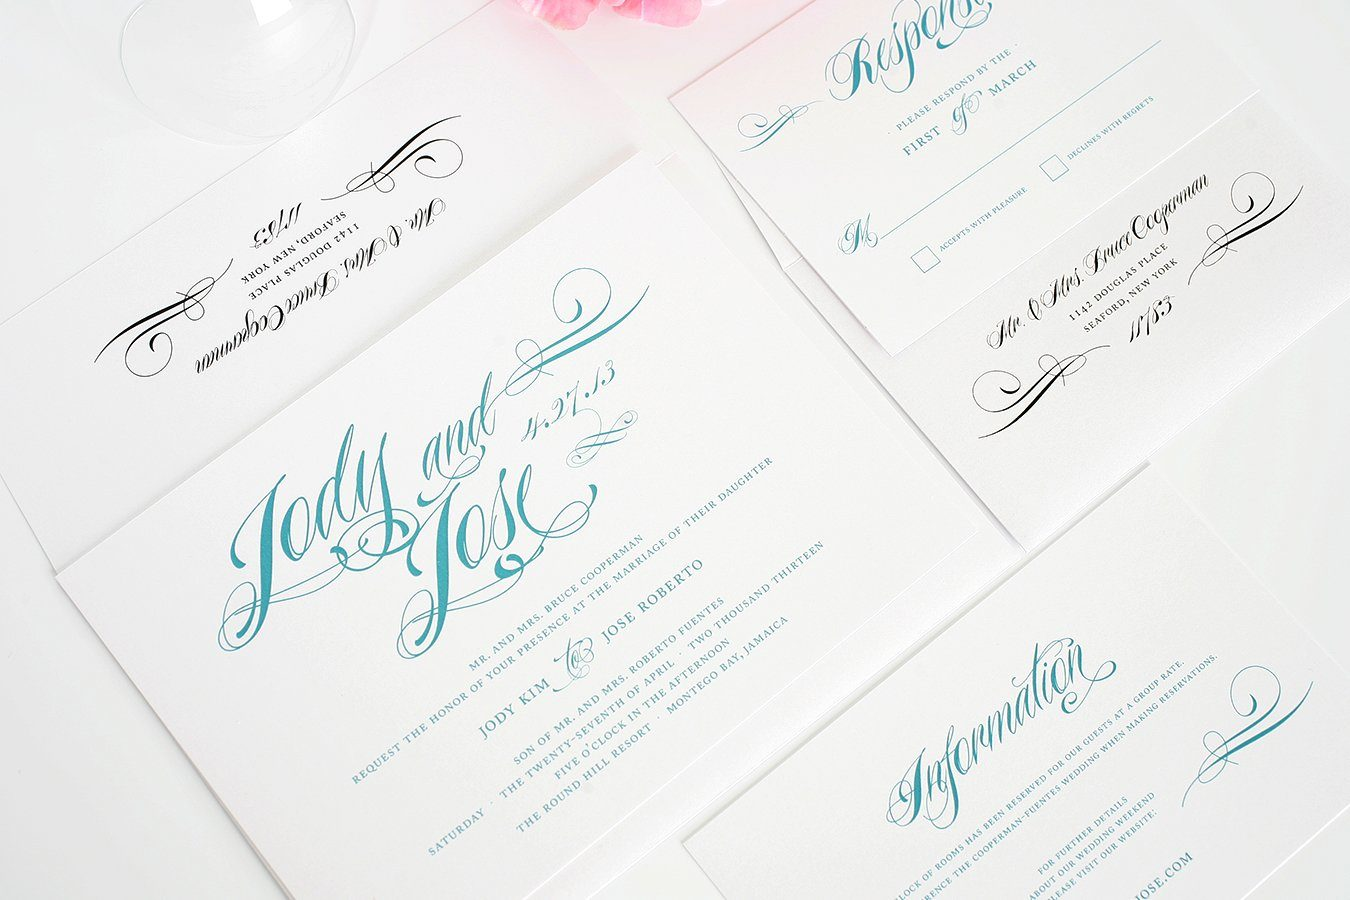 teal wedding invitations with mint accents – wedding invitations, Wedding invitations